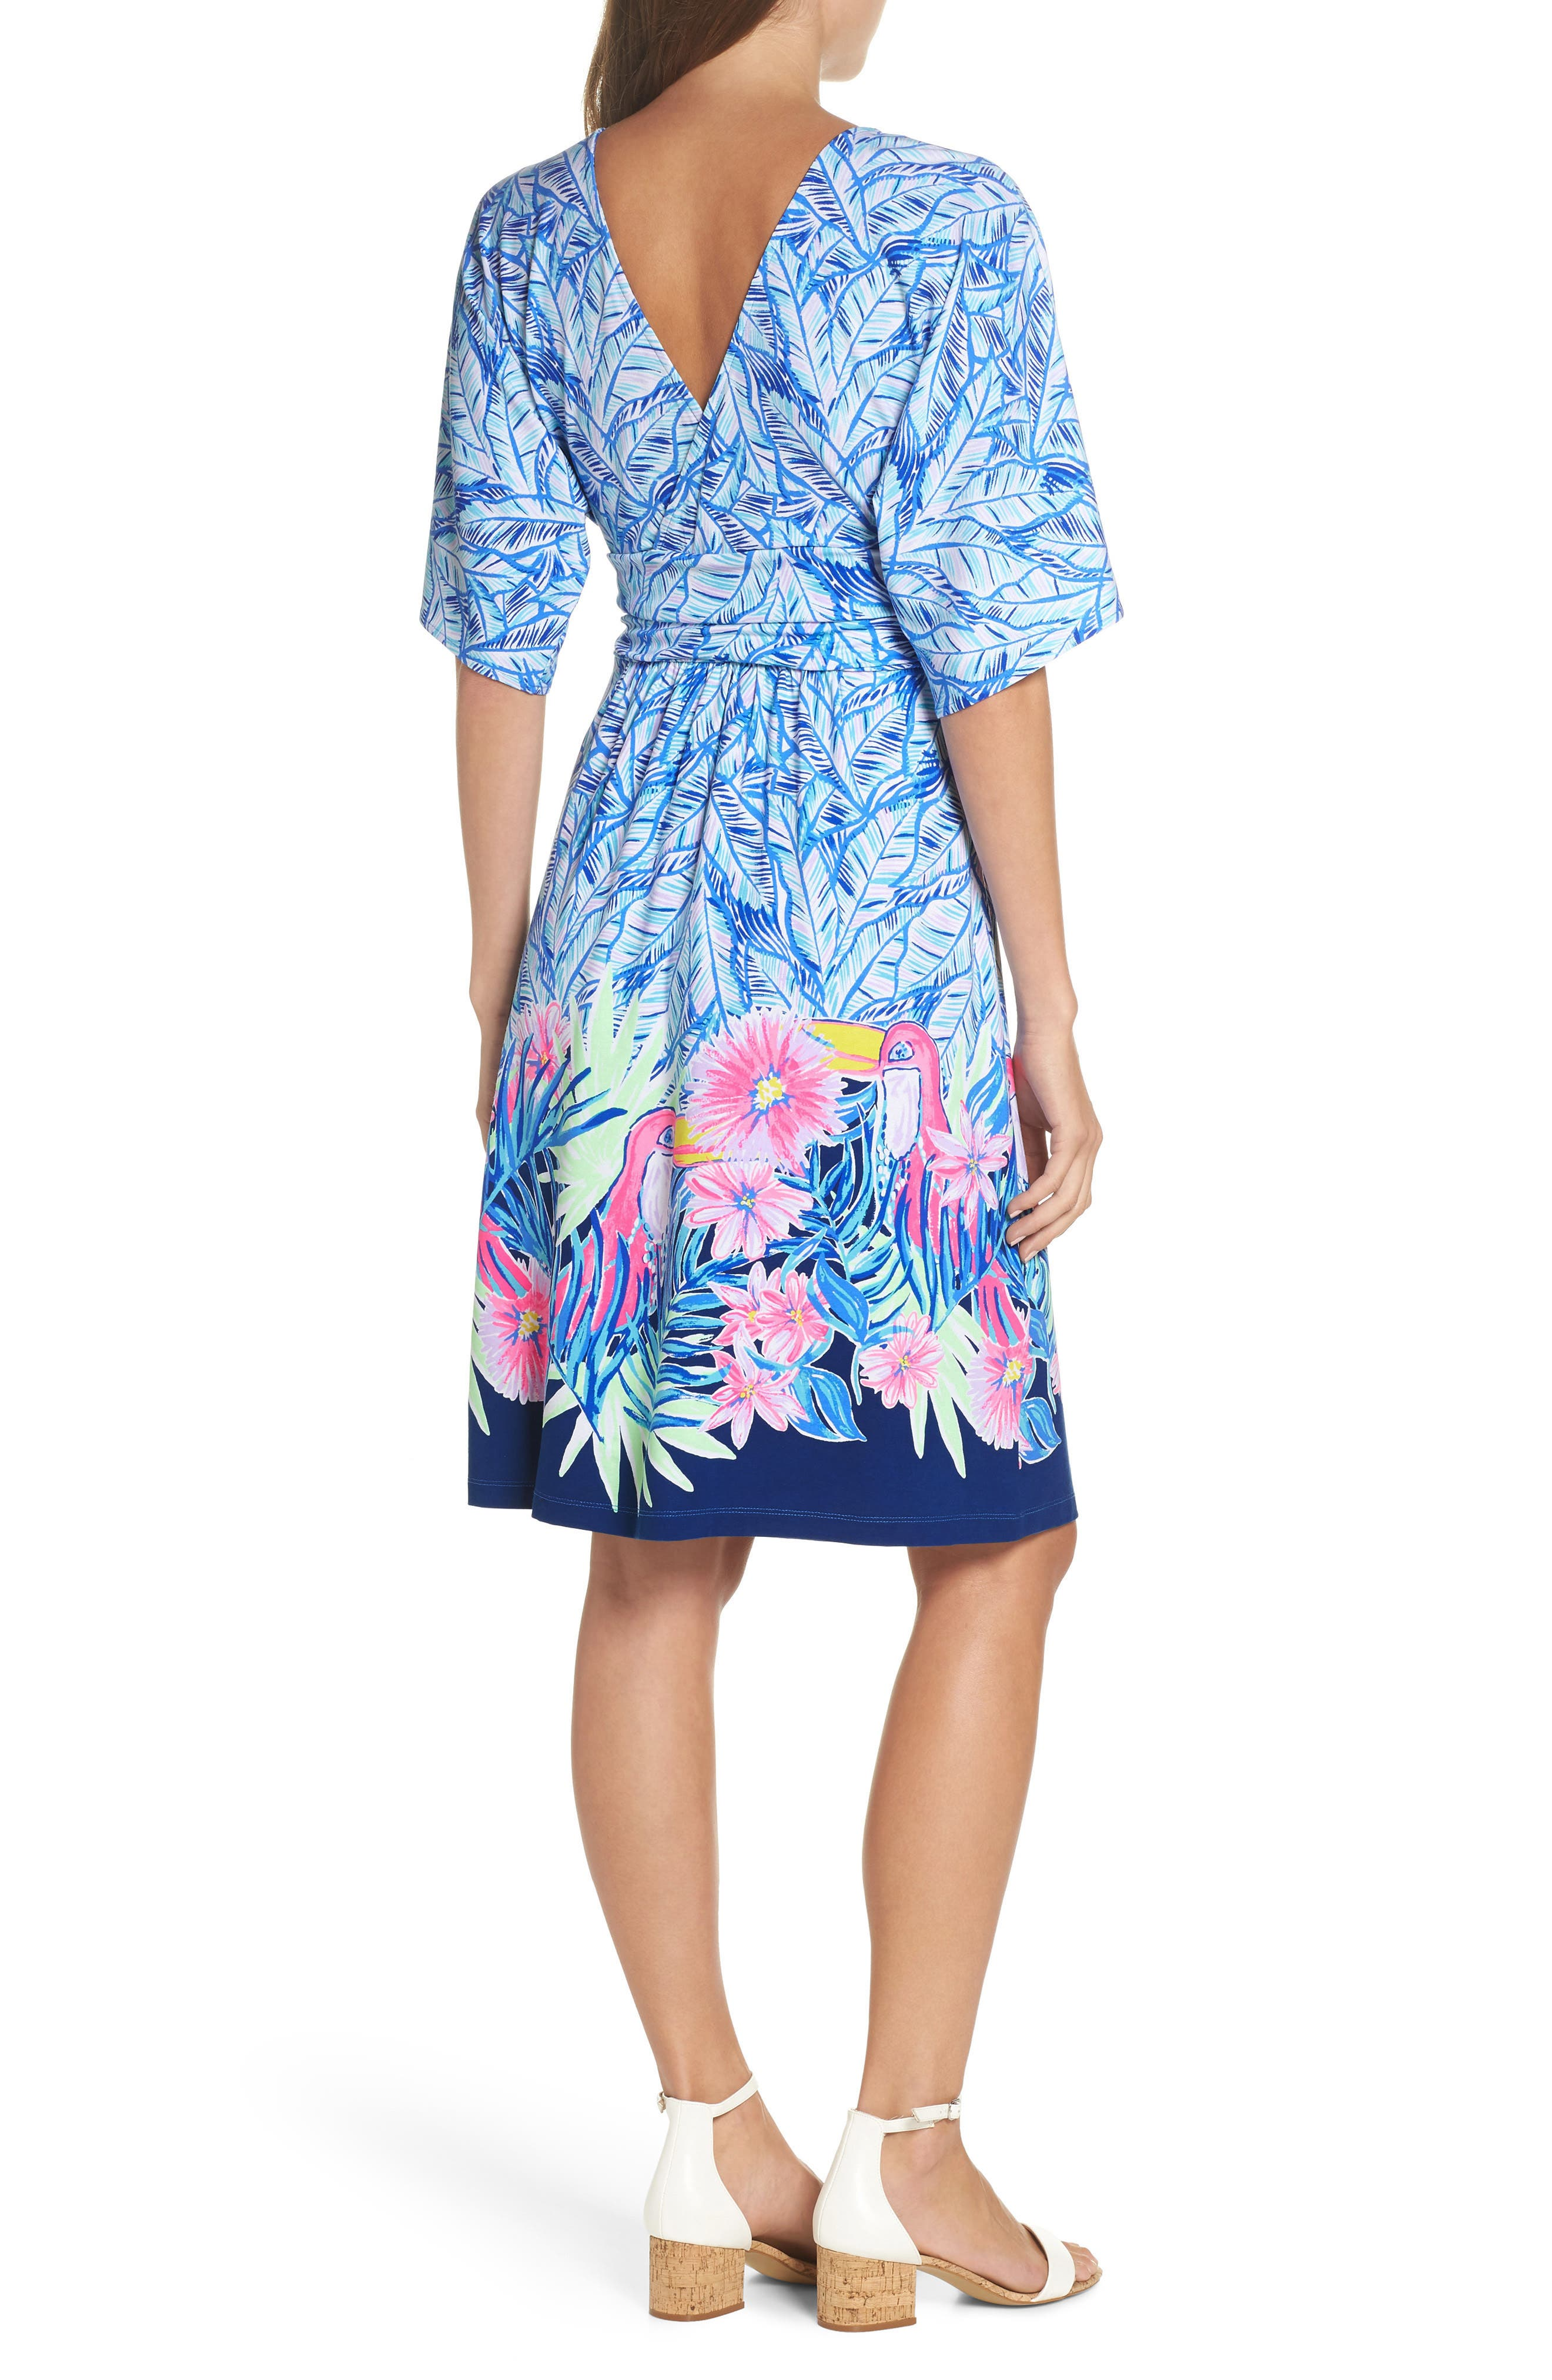 Parigi Print Dress,                             Alternate thumbnail 2, color,                             420